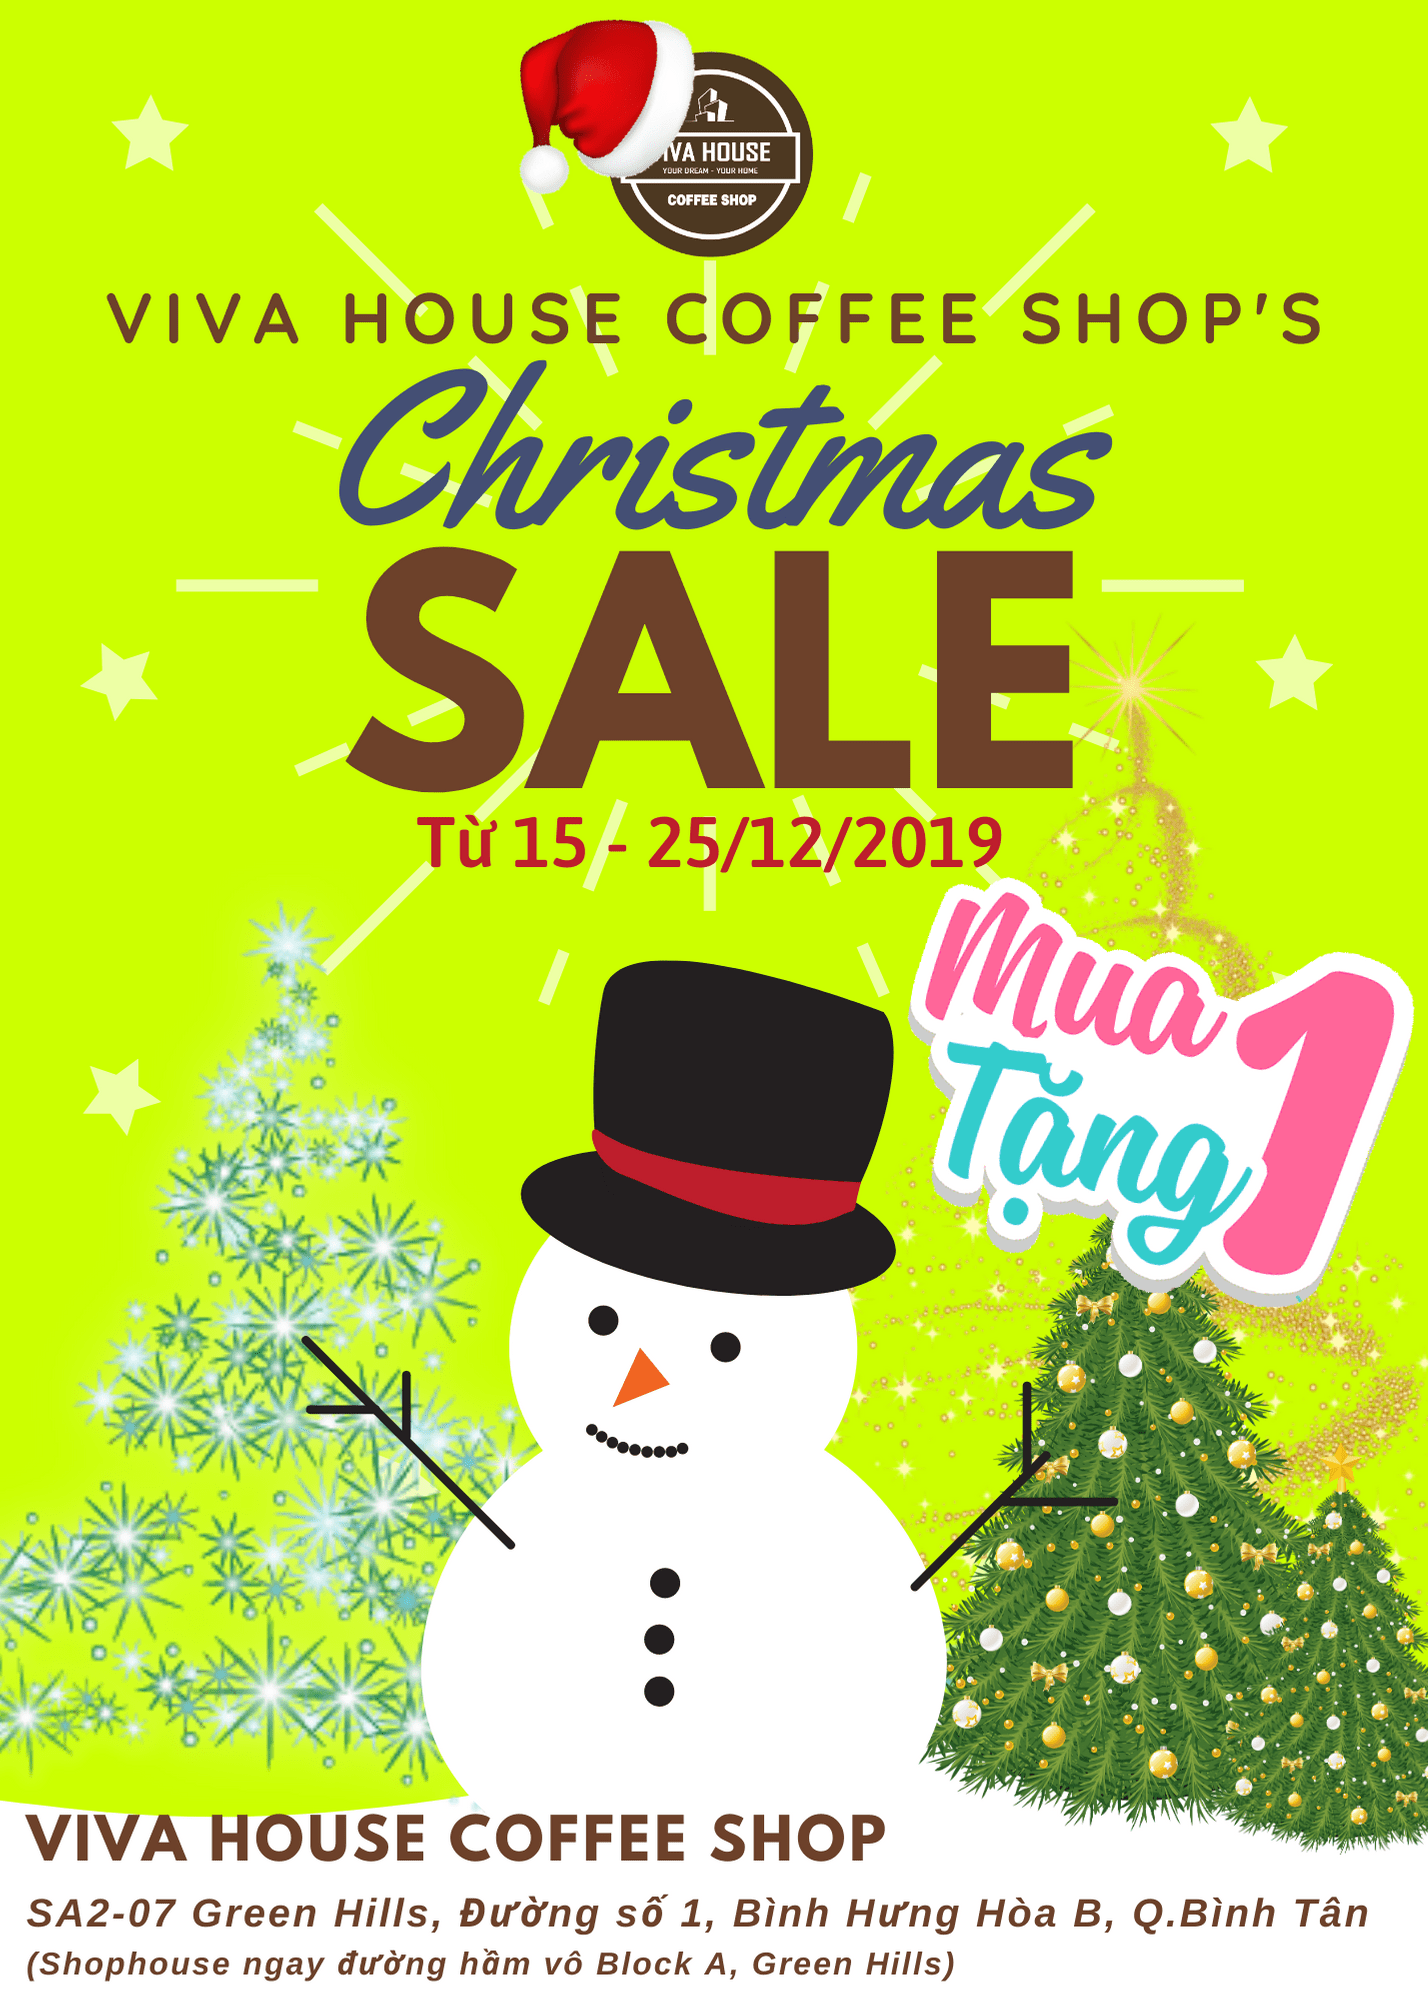 Viva House Coffee